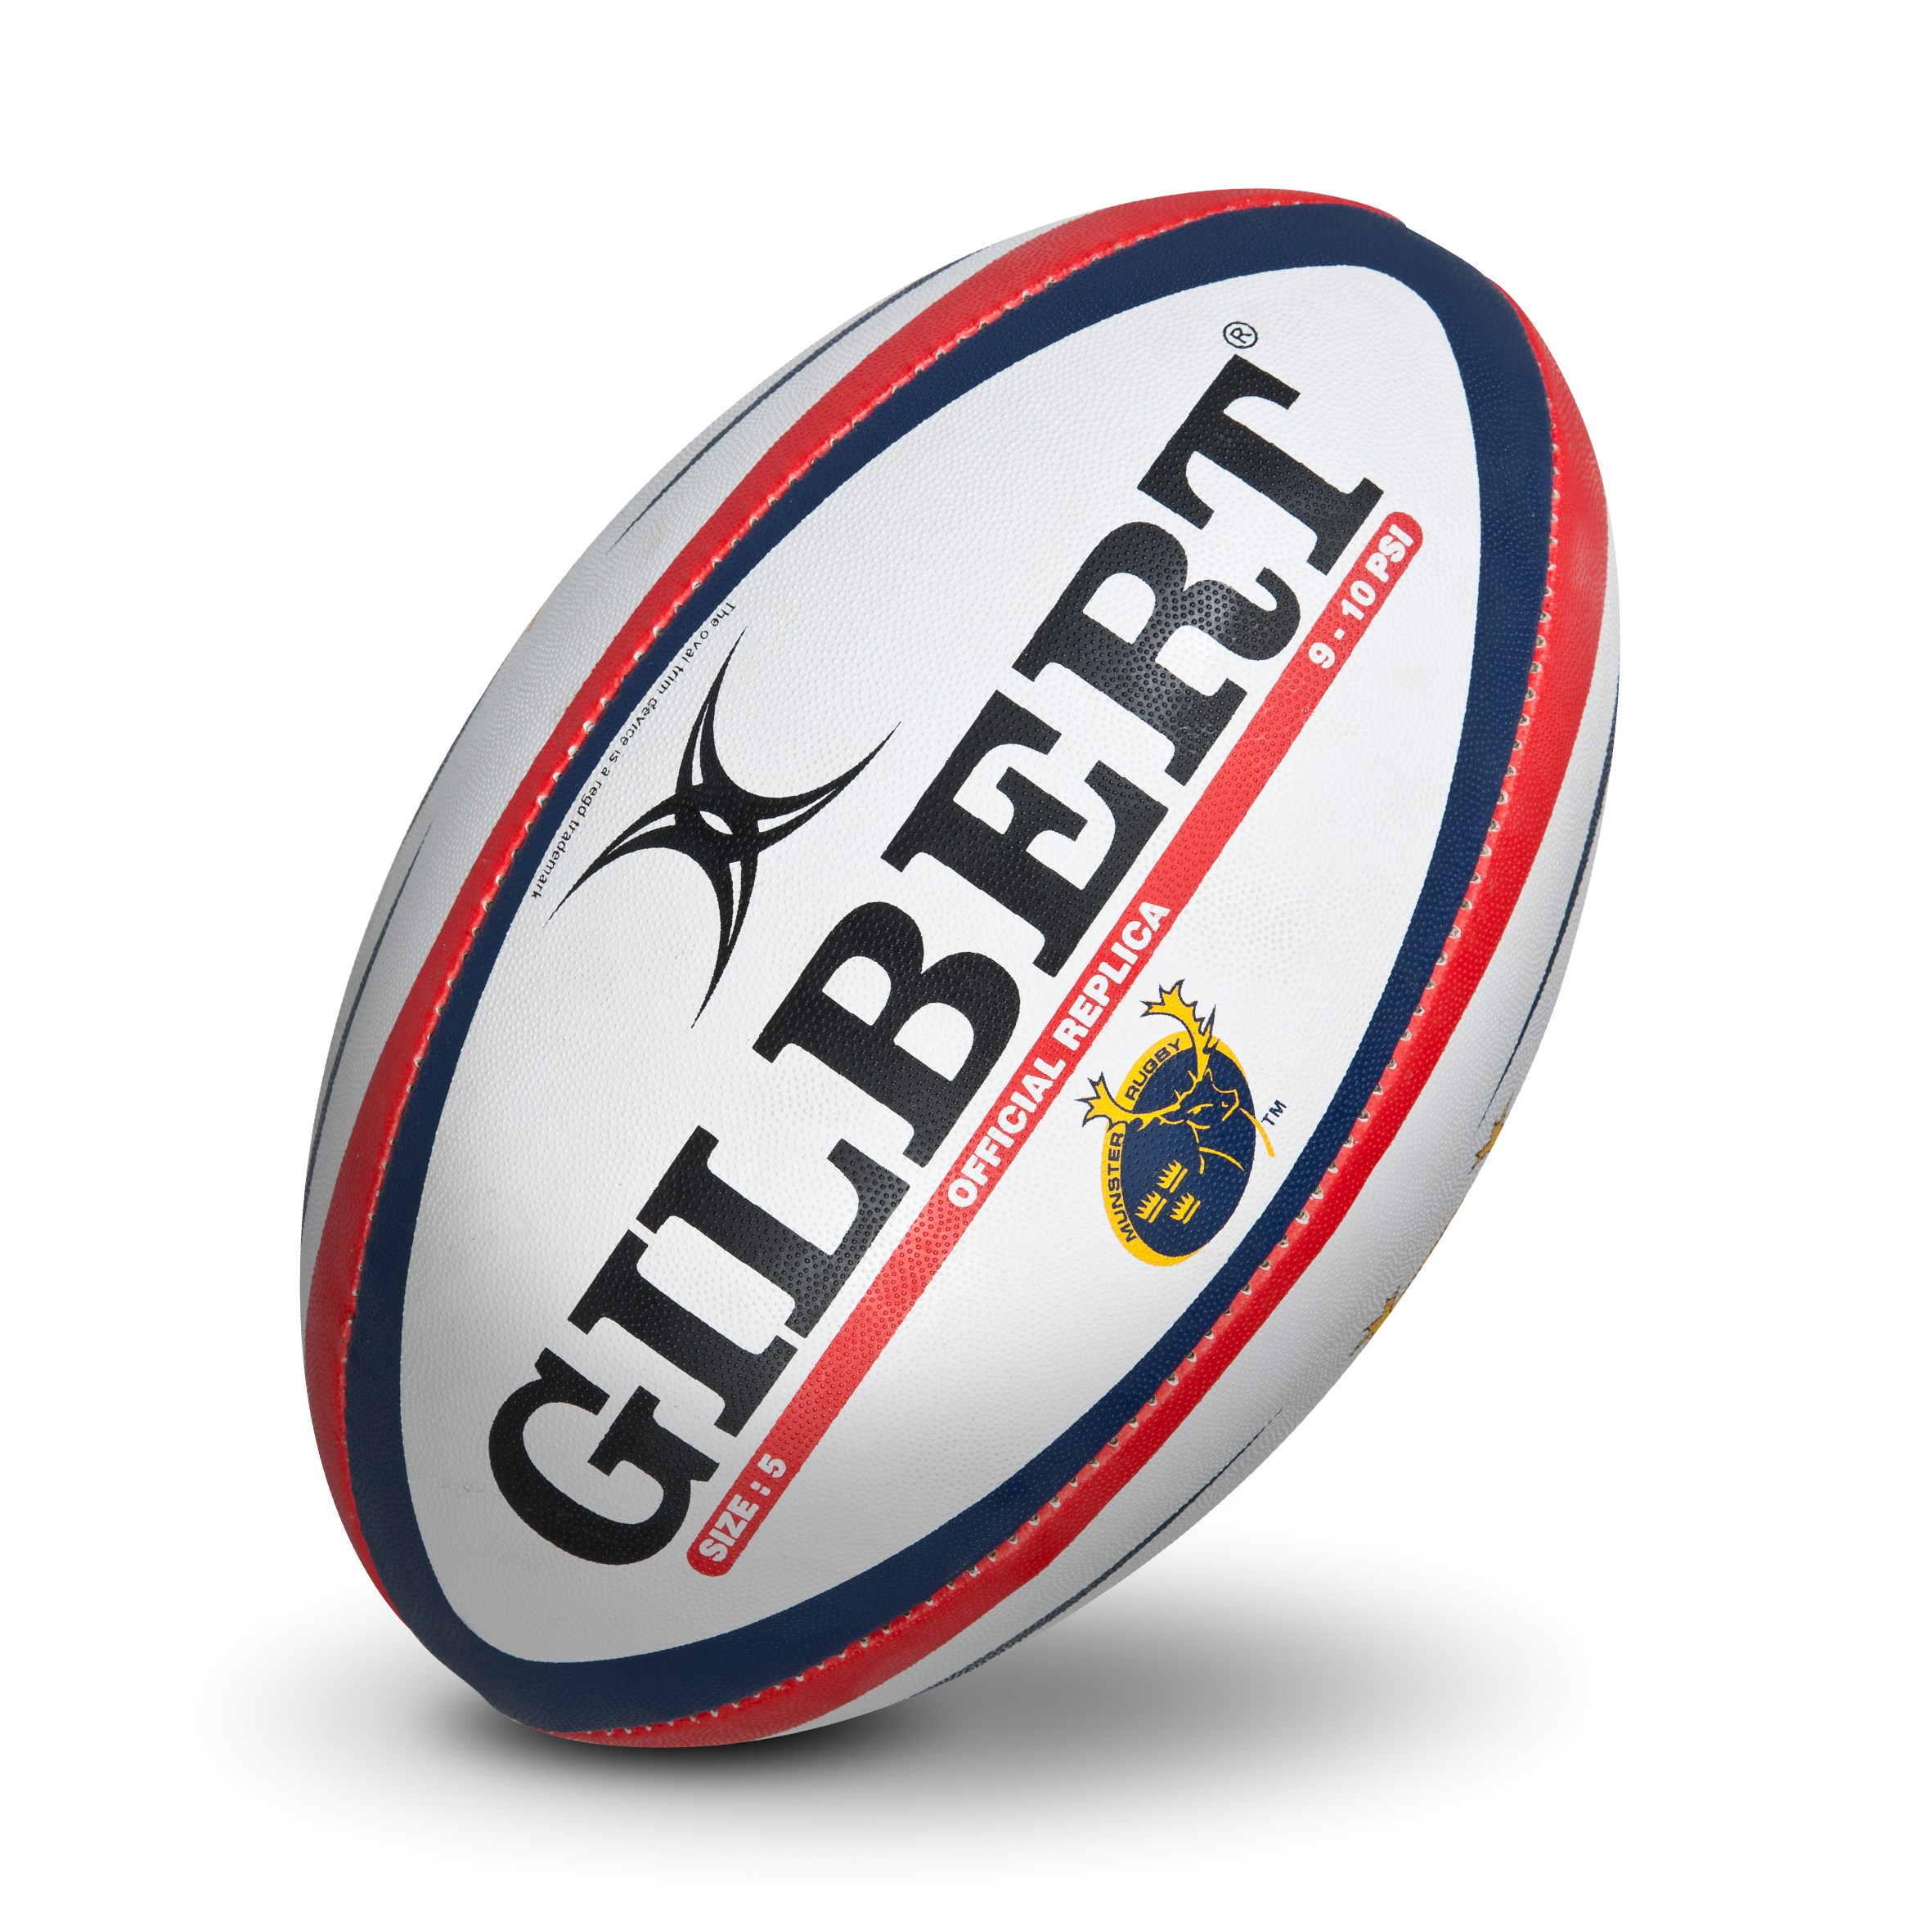 Gilbert Replica Rugby Ball - Size 5 - White/Red